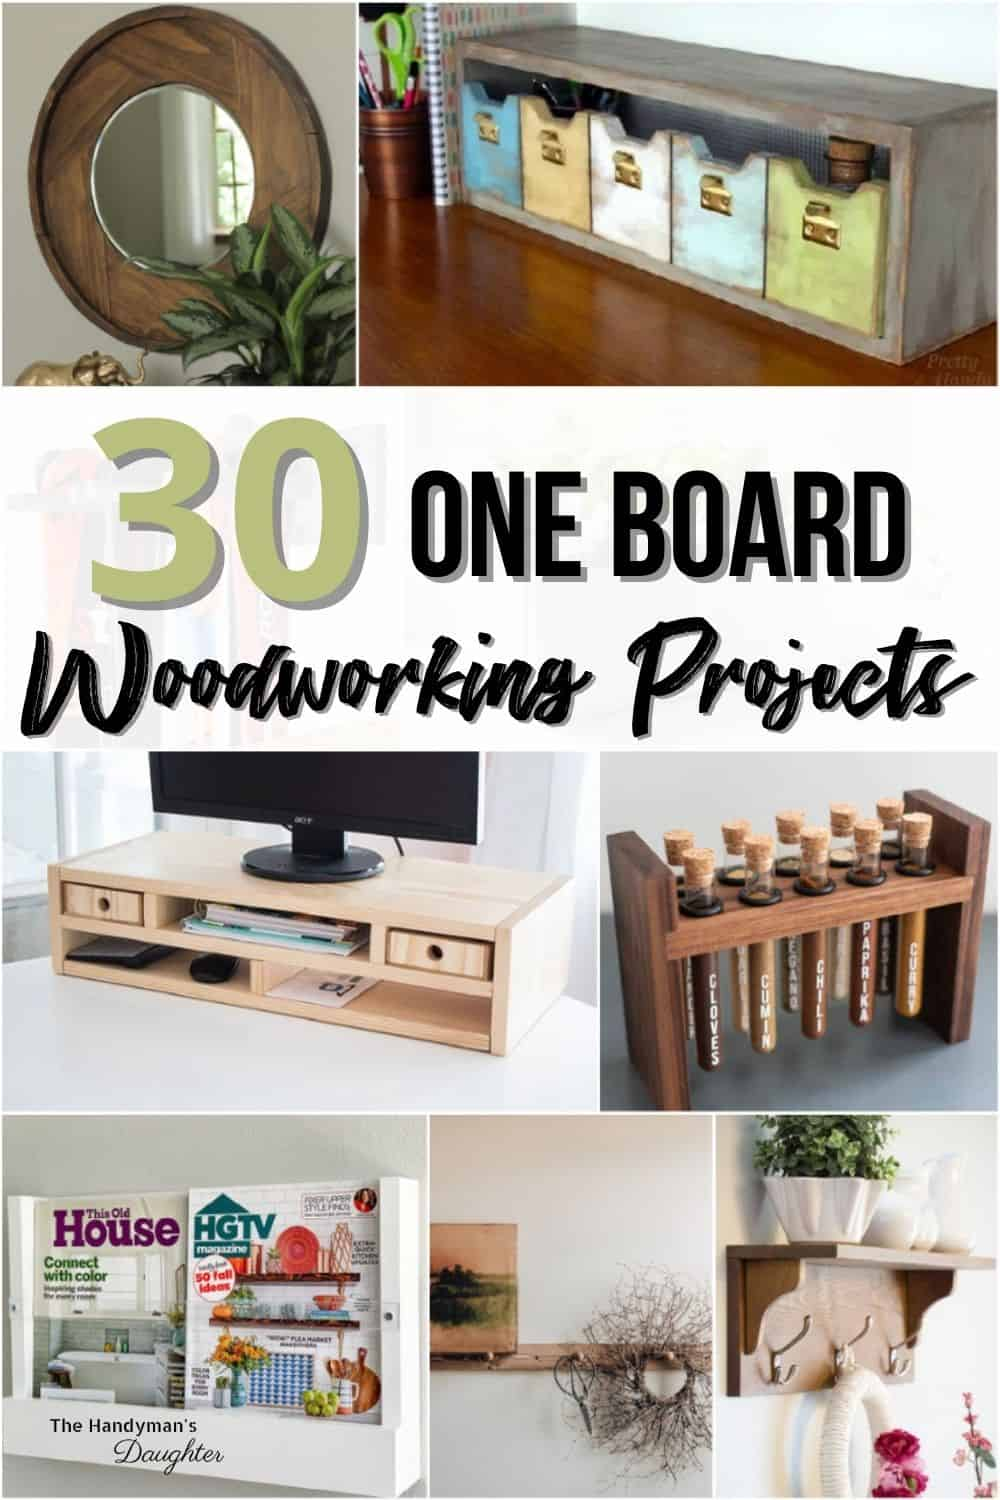 30 one board woodworking projects